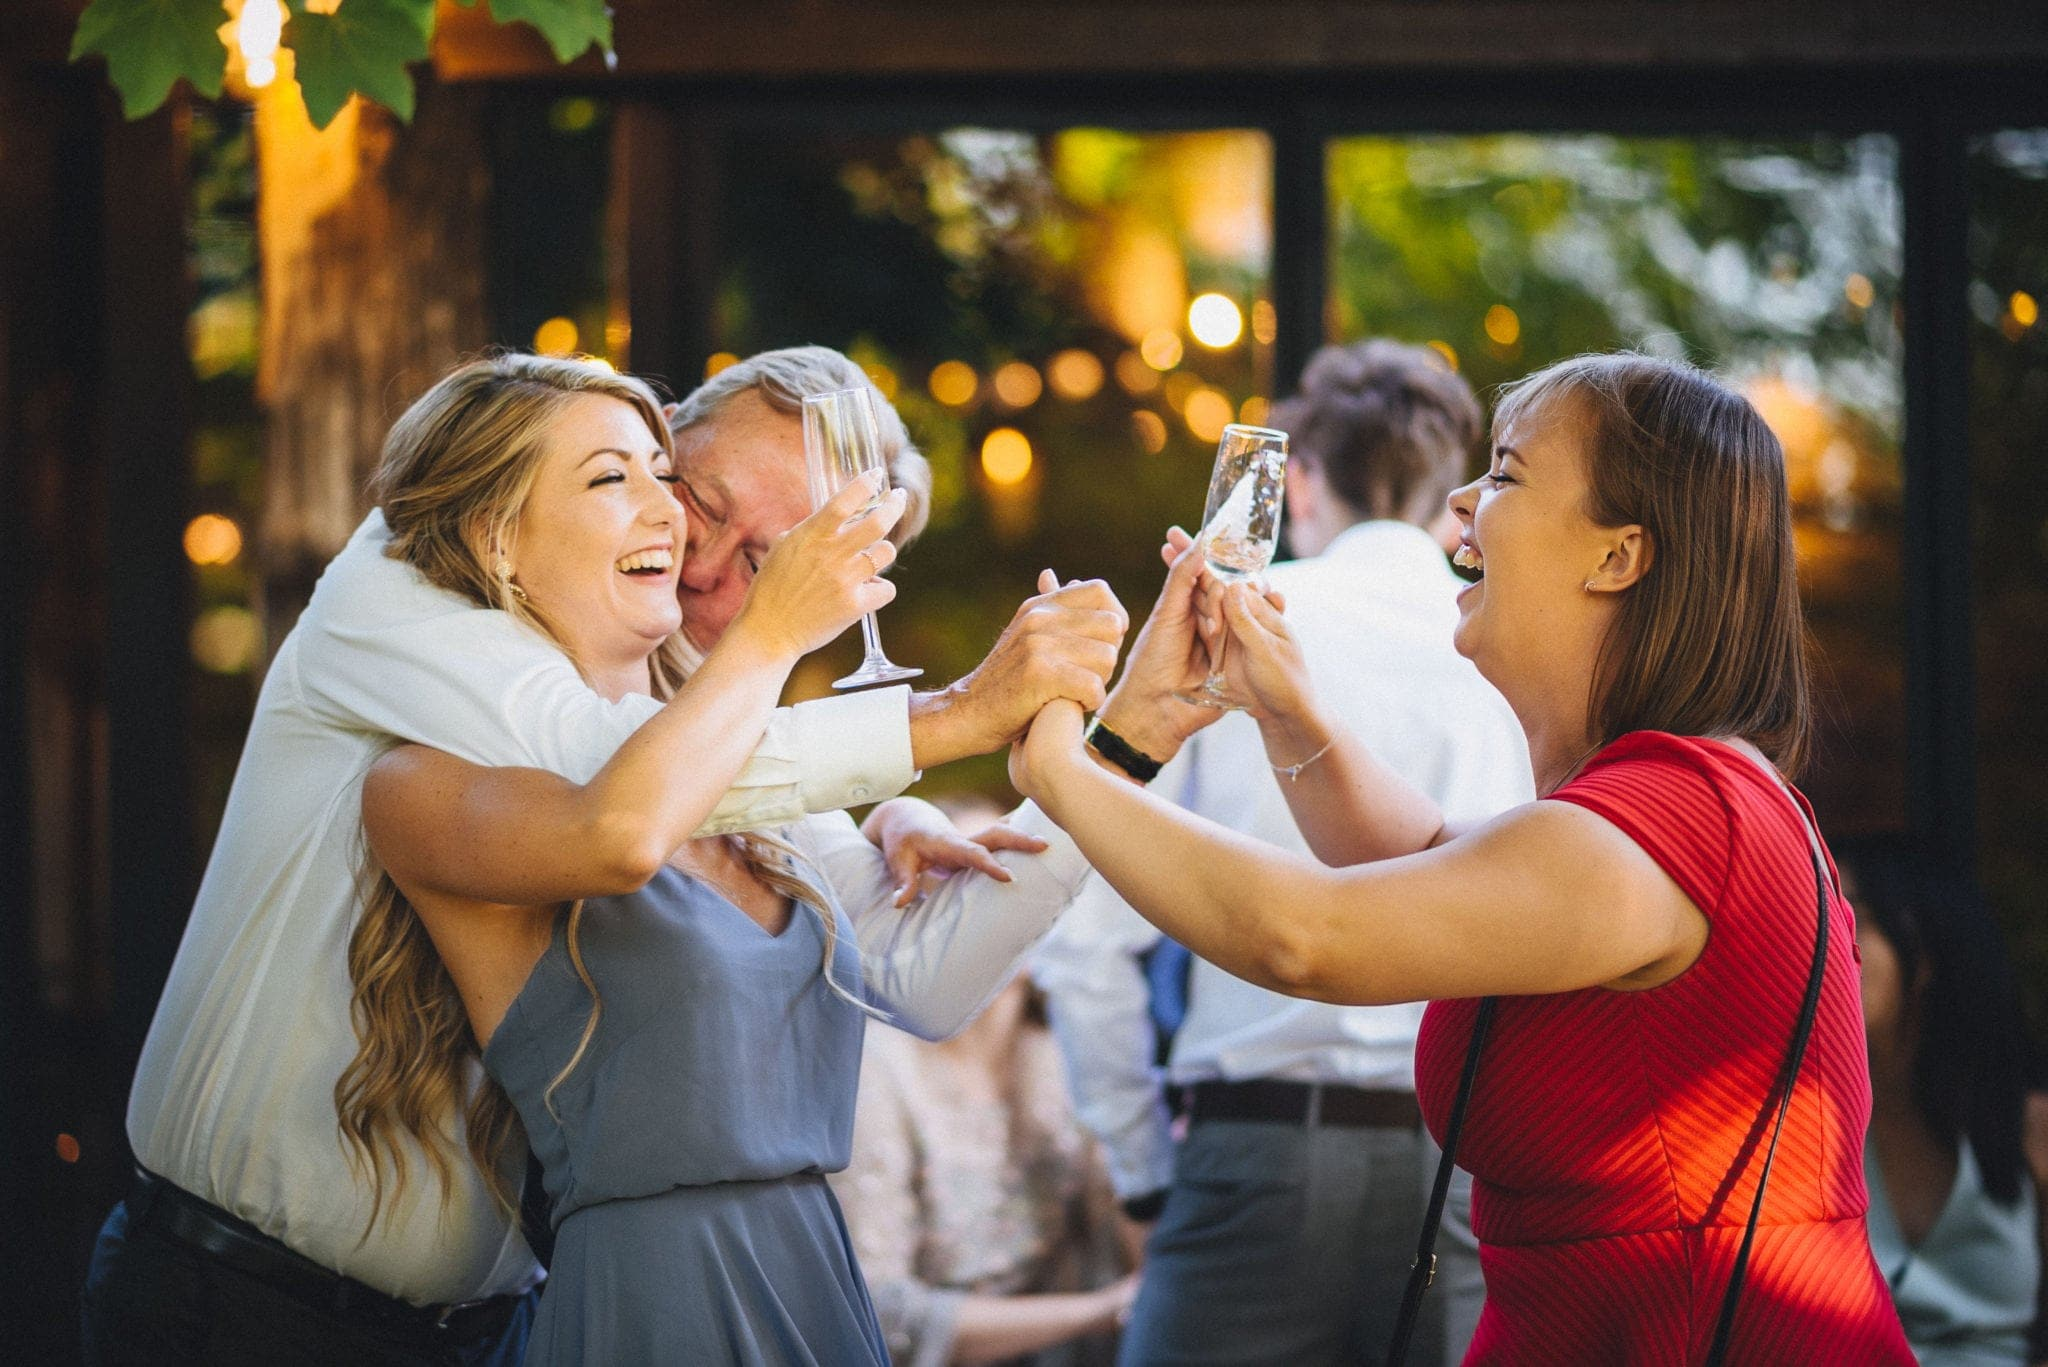 Wedding guests hugging and laughing while cheering with glasses